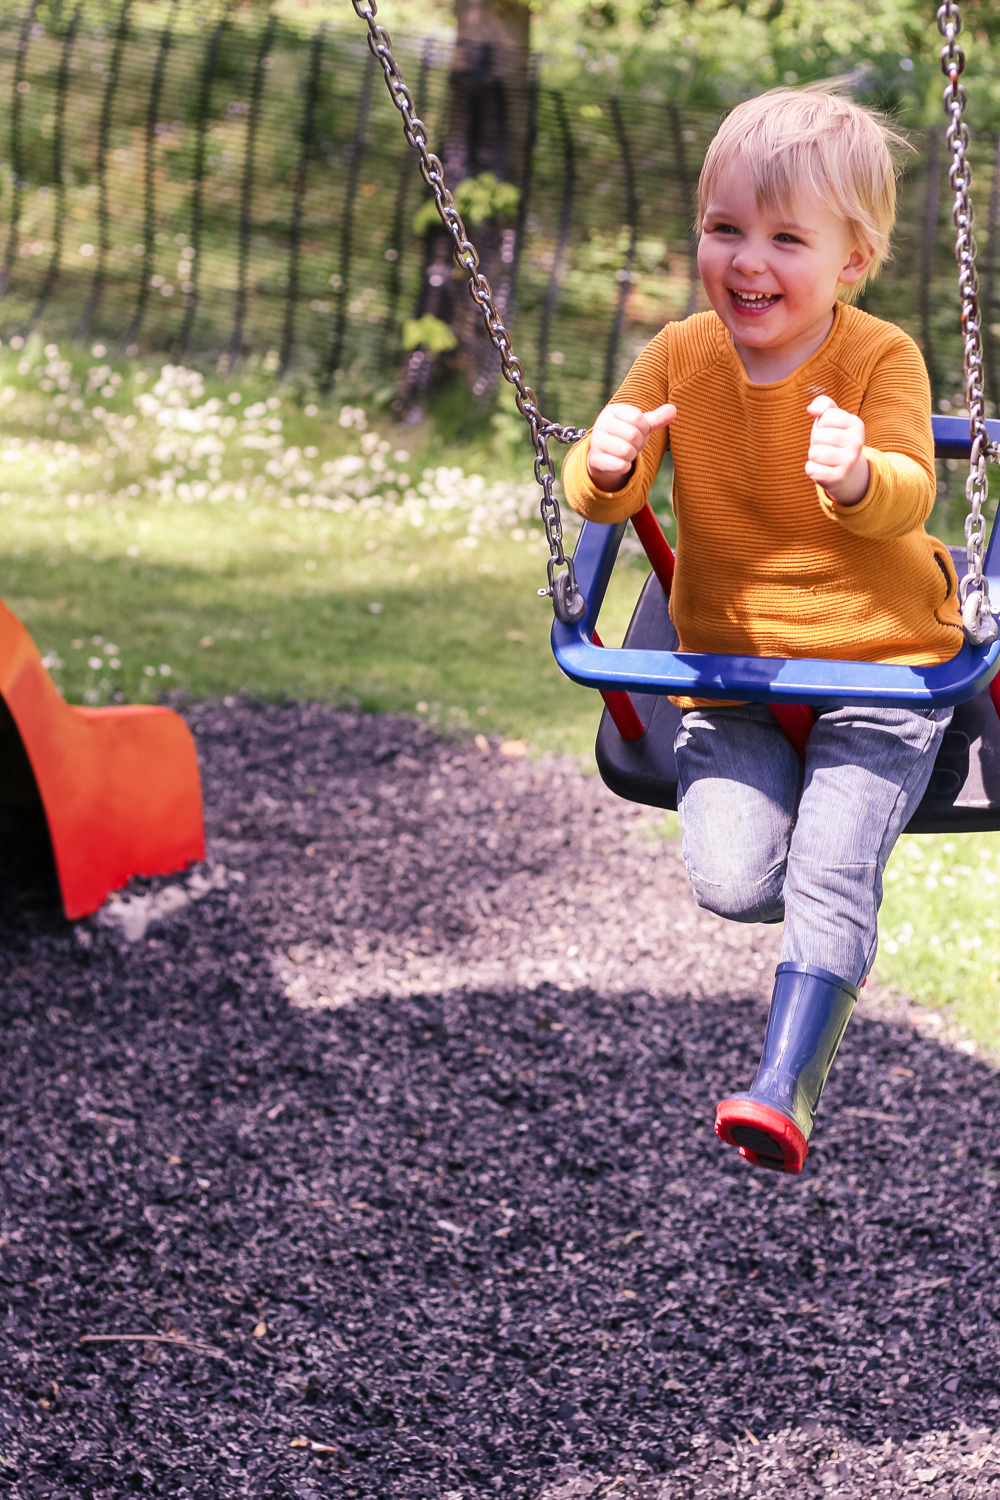 Pickle having the time of his life on the swing